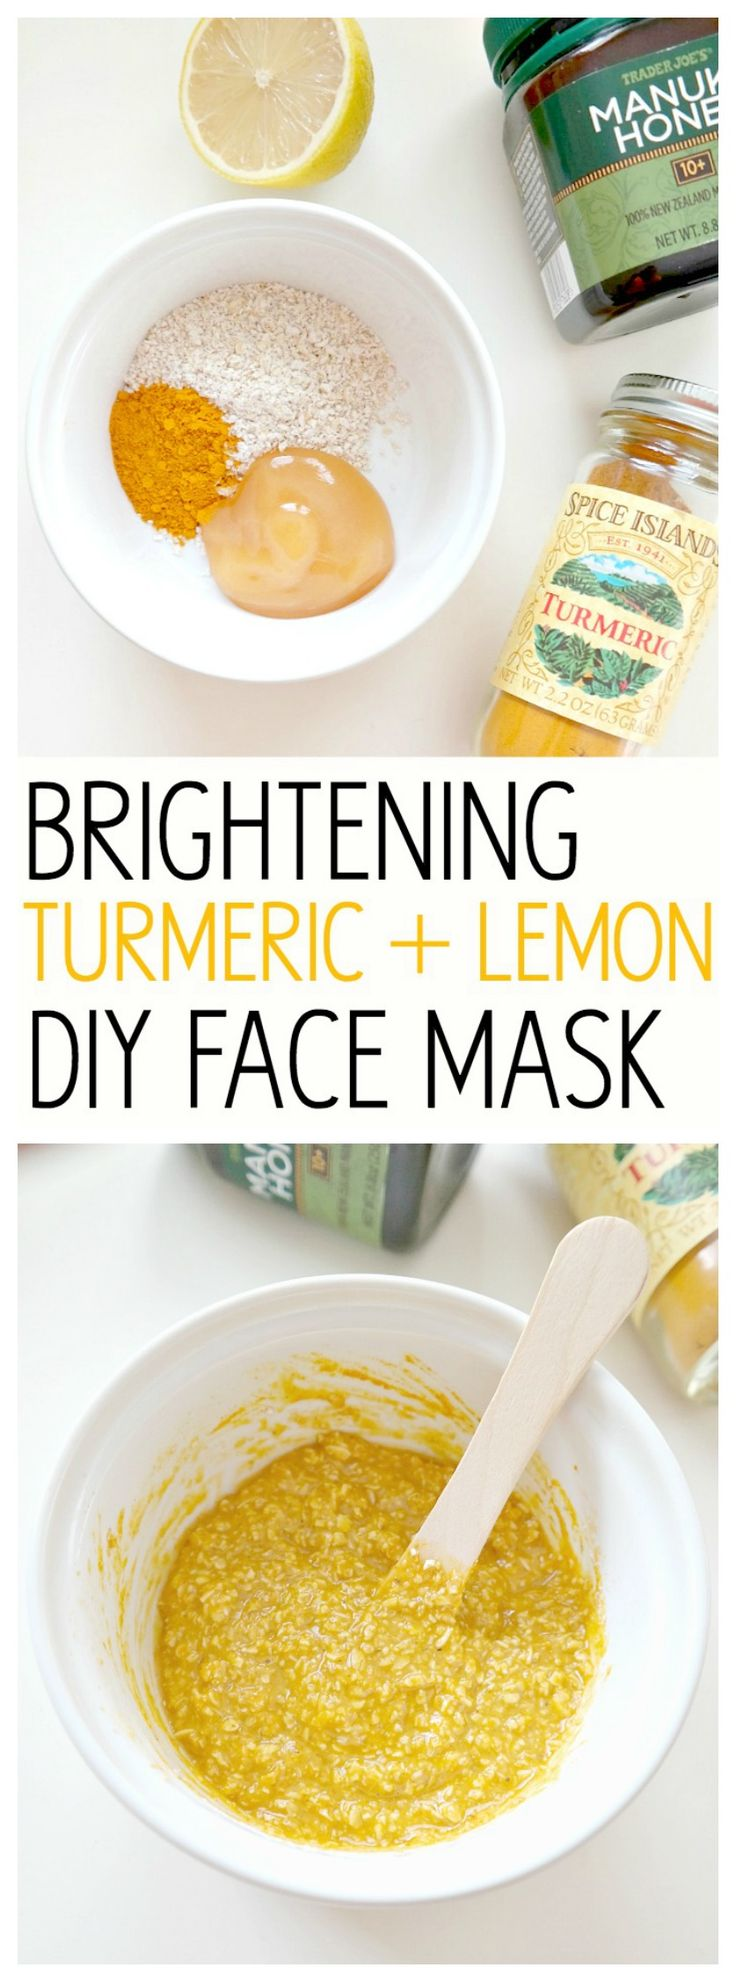 Brightening Turmeric + Lemon DIY Face Mask. With beautifying turmeric and healing manuka honey, this mask is perfect for acne-prone skin, evening out skin tone and rejuvenating radiance. Helps retain moisture and a glowy complexion!